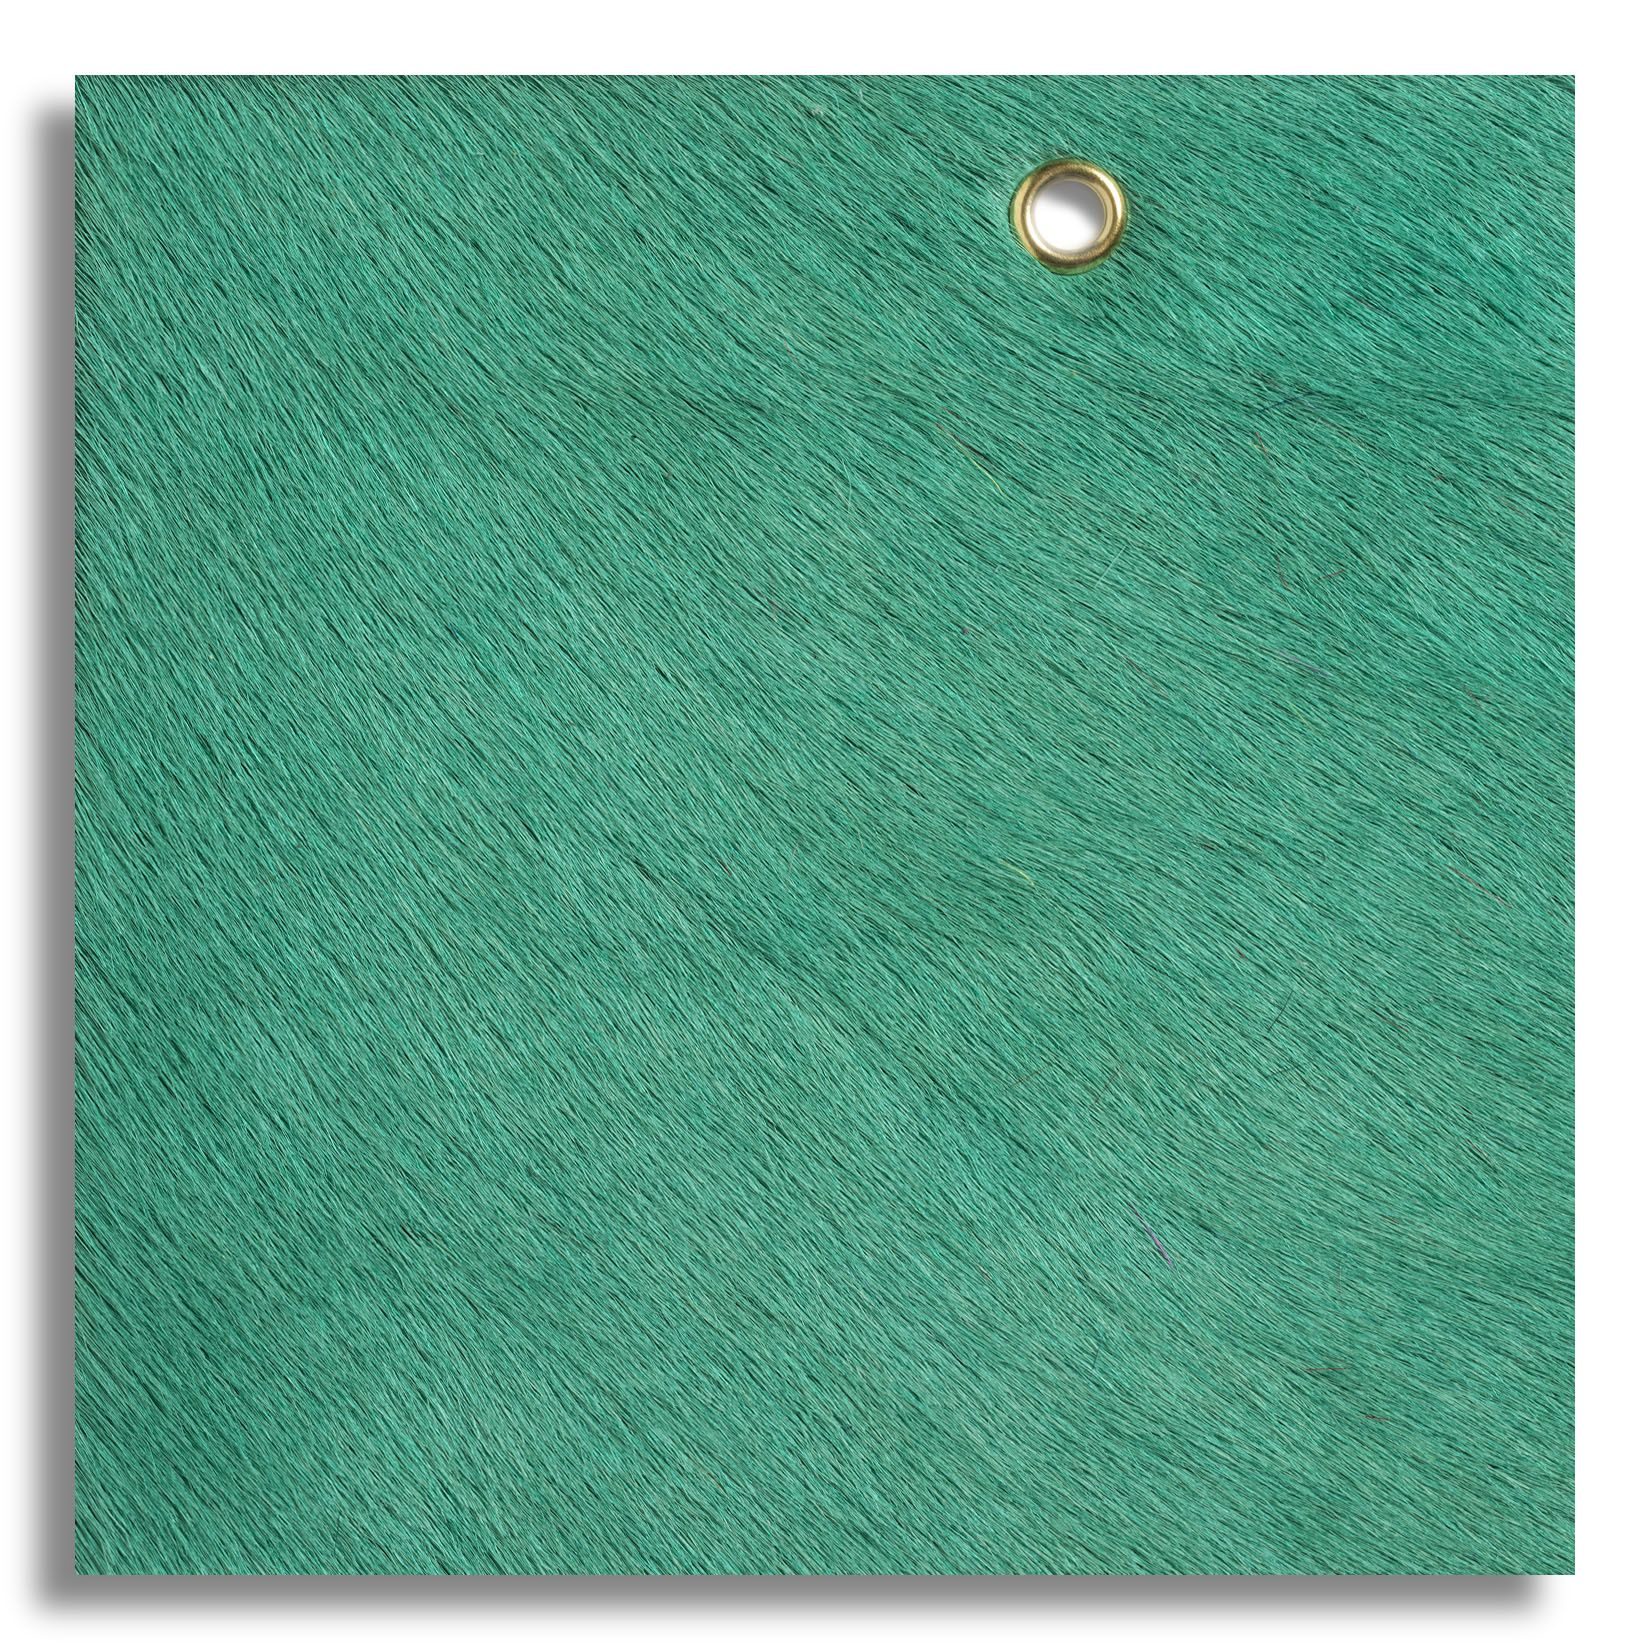 Edelman Leather Cavallini In Barrier Reef Fabric Rug Leather